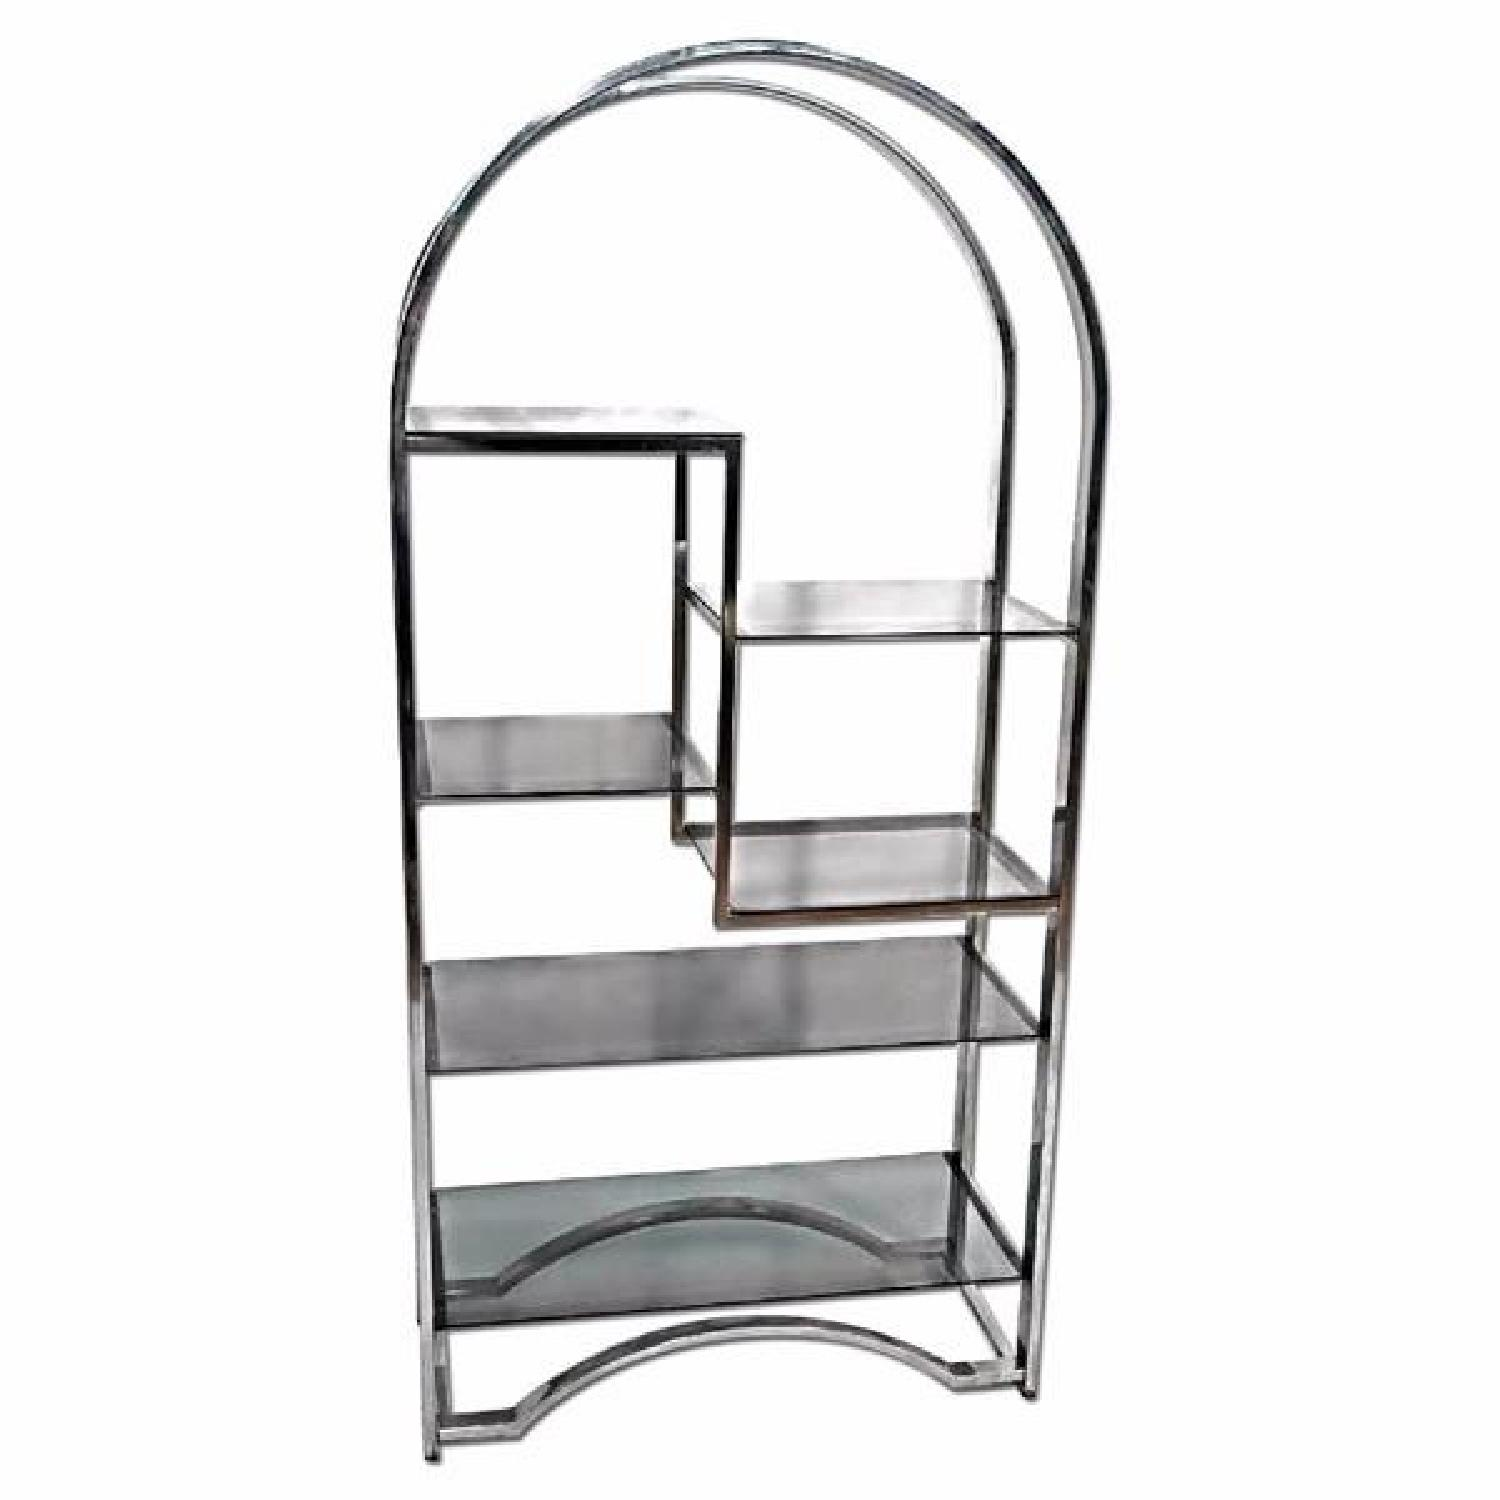 Milo Baughman Chrome Arched Top Etagere Smoked Glass Shelves - image-0